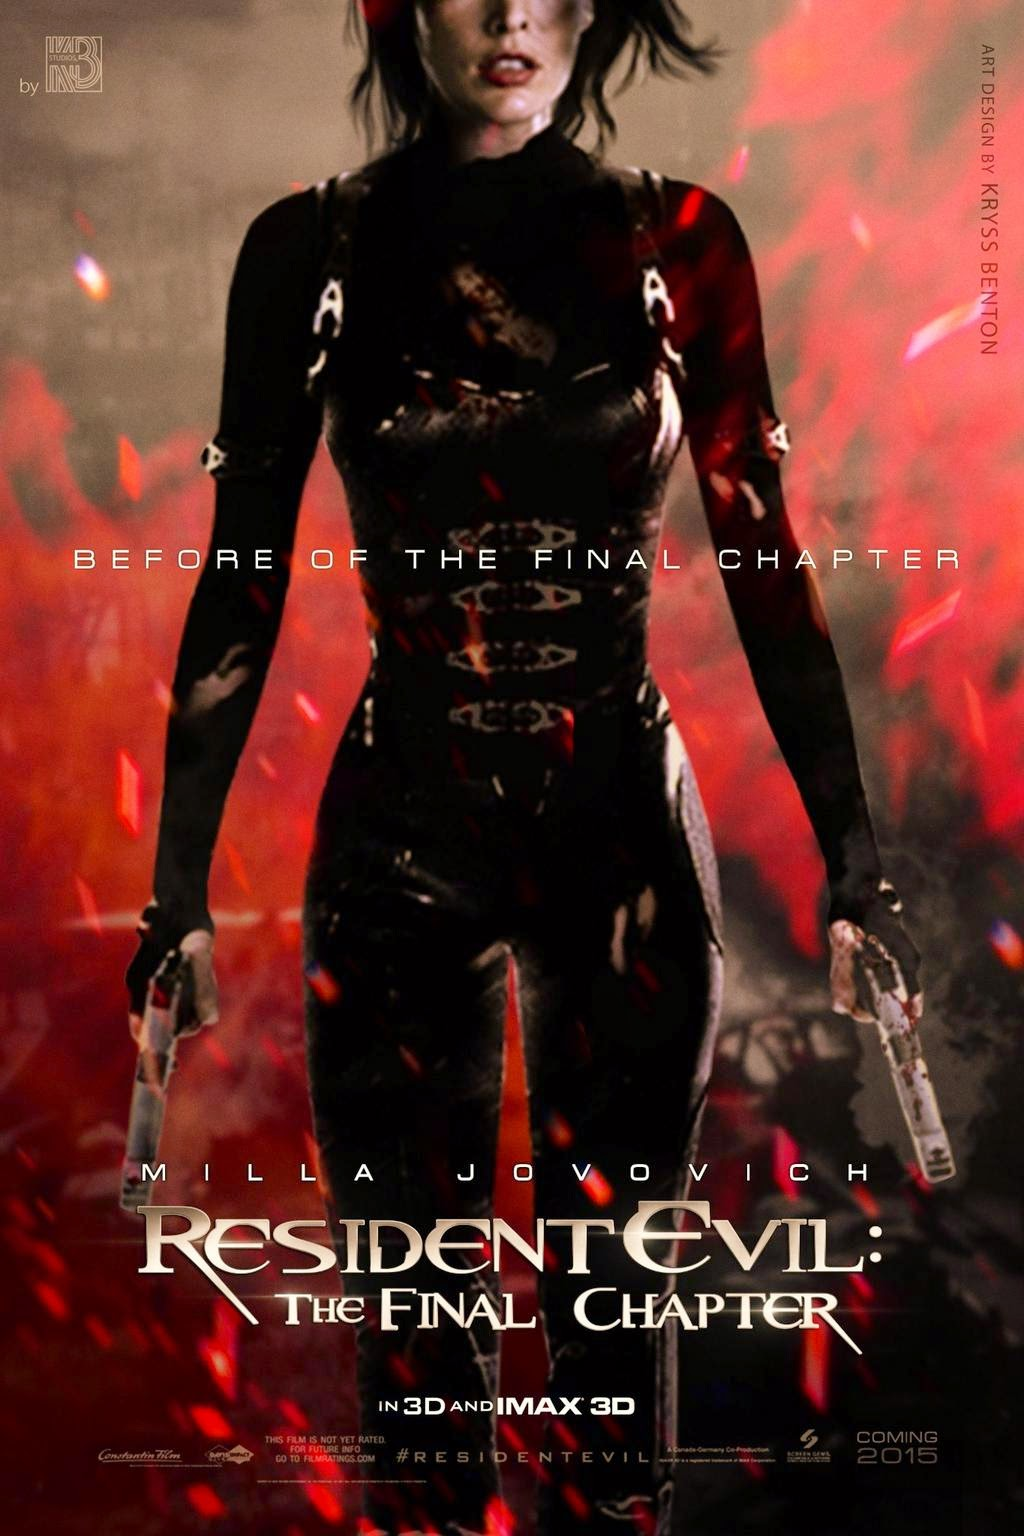 Resident Evil 6 The Final Chapter ผีชีวะ ภาค 6 [HD]